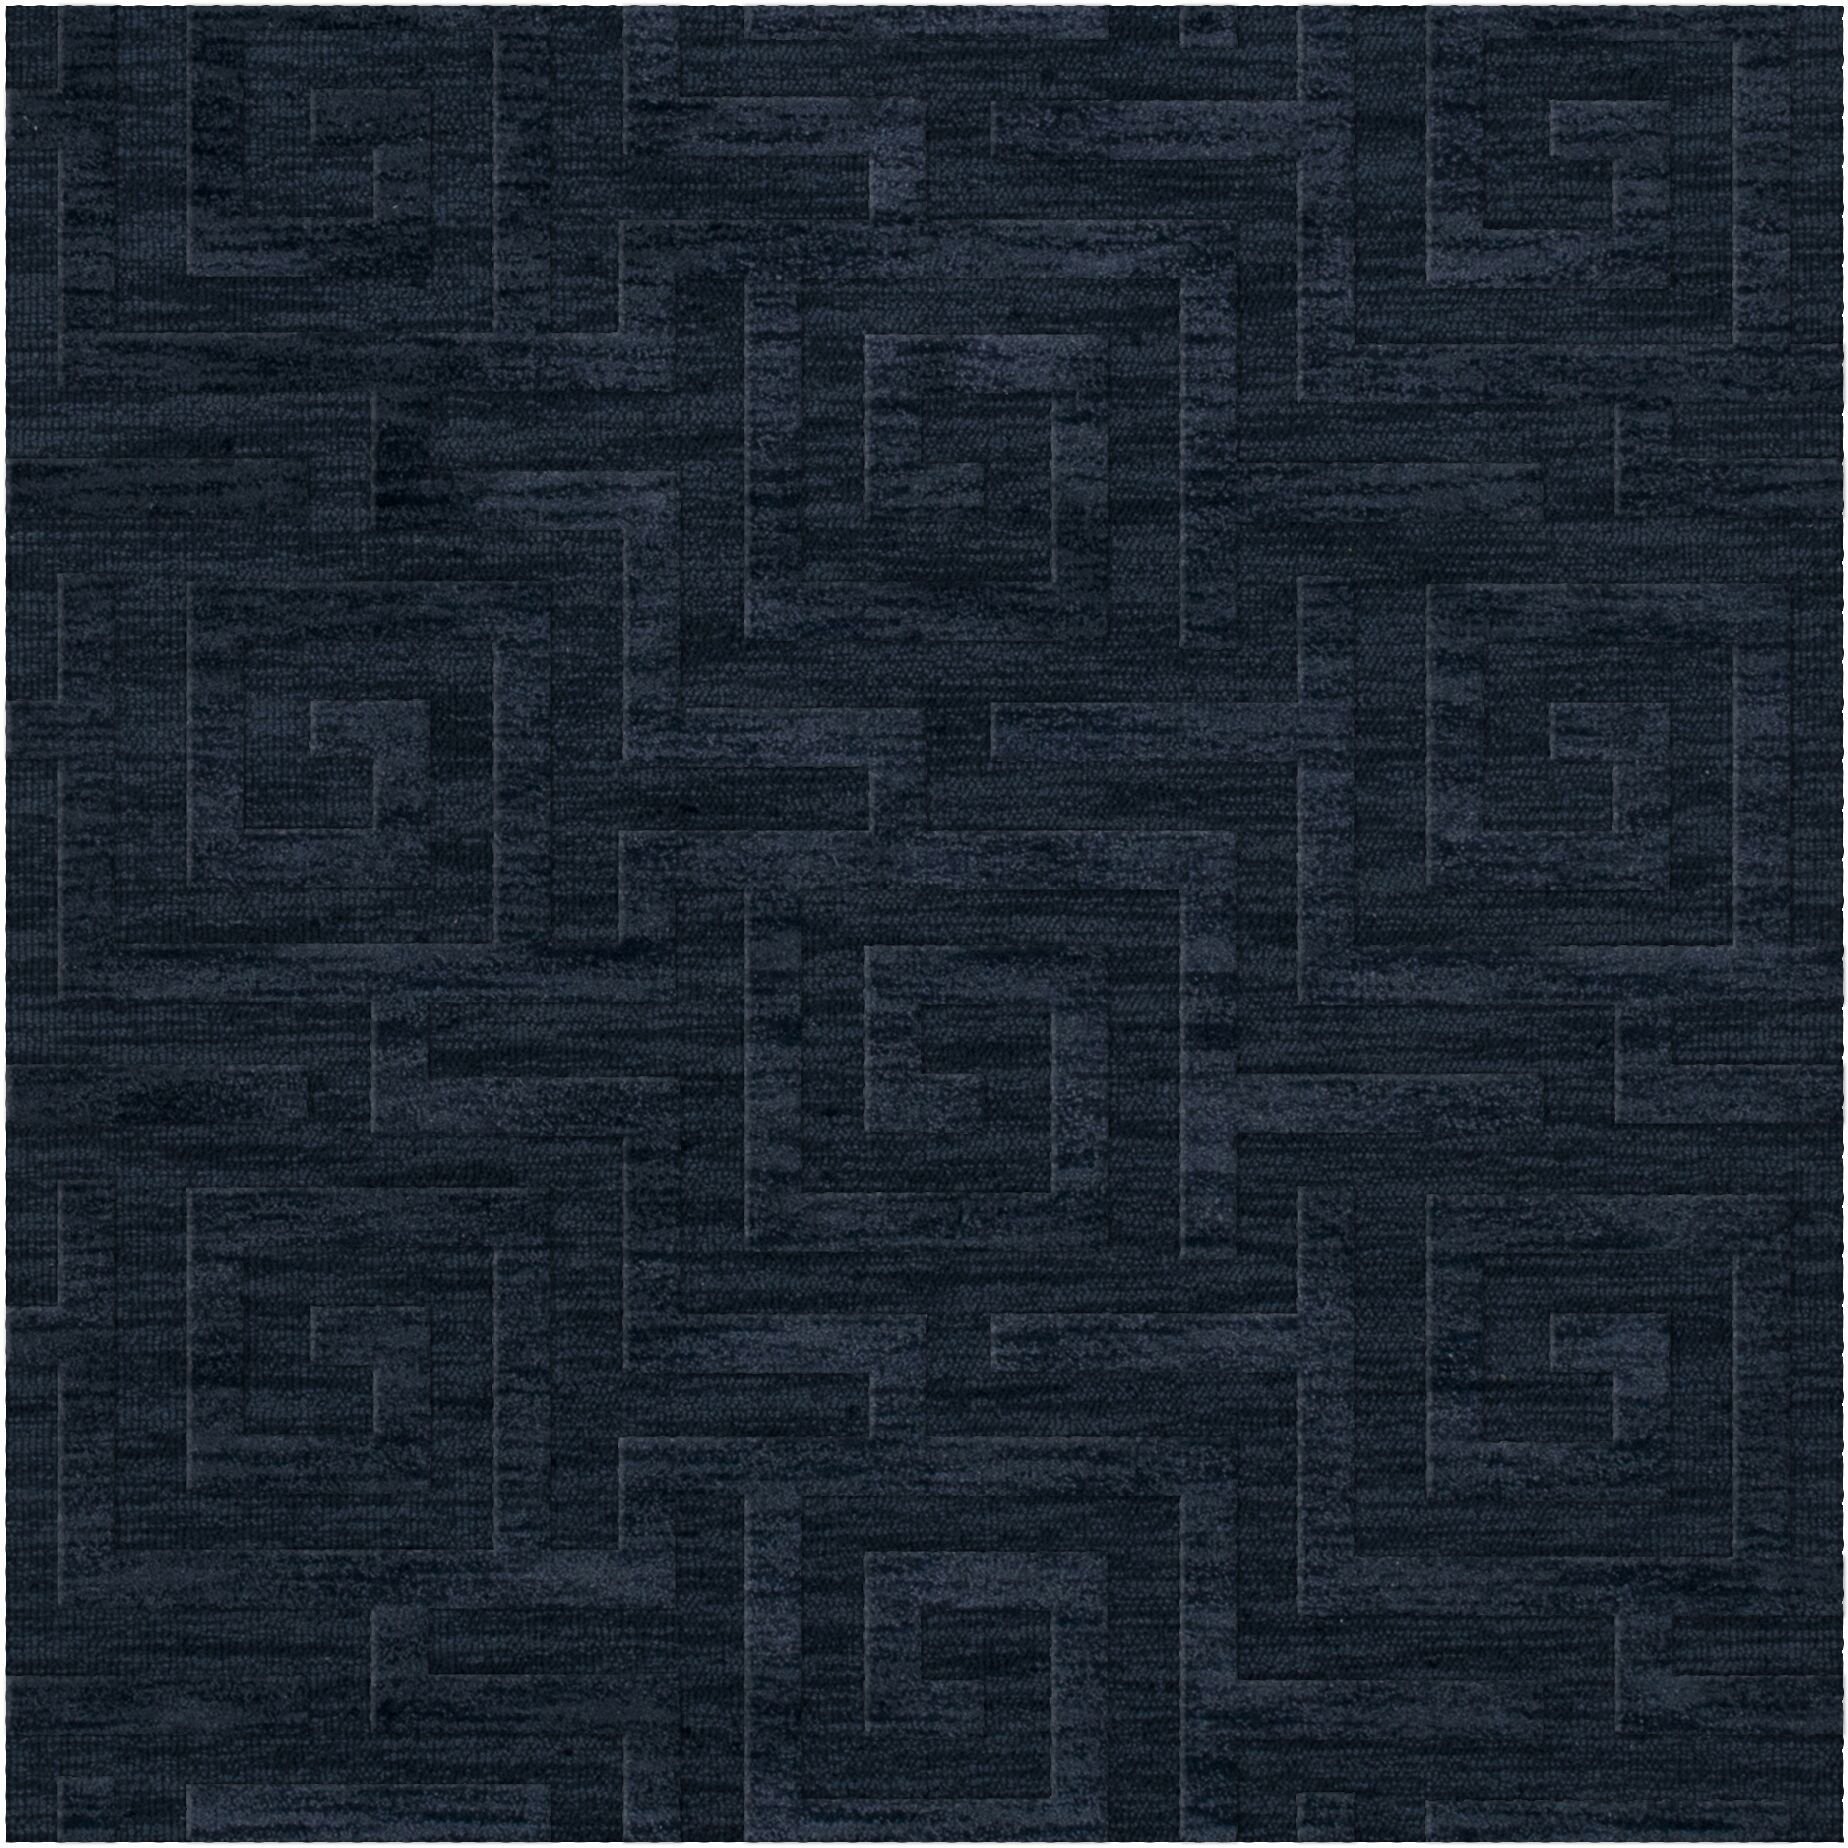 Dover Tufted Wool Navy Area Rug Rug Size: Square 4'